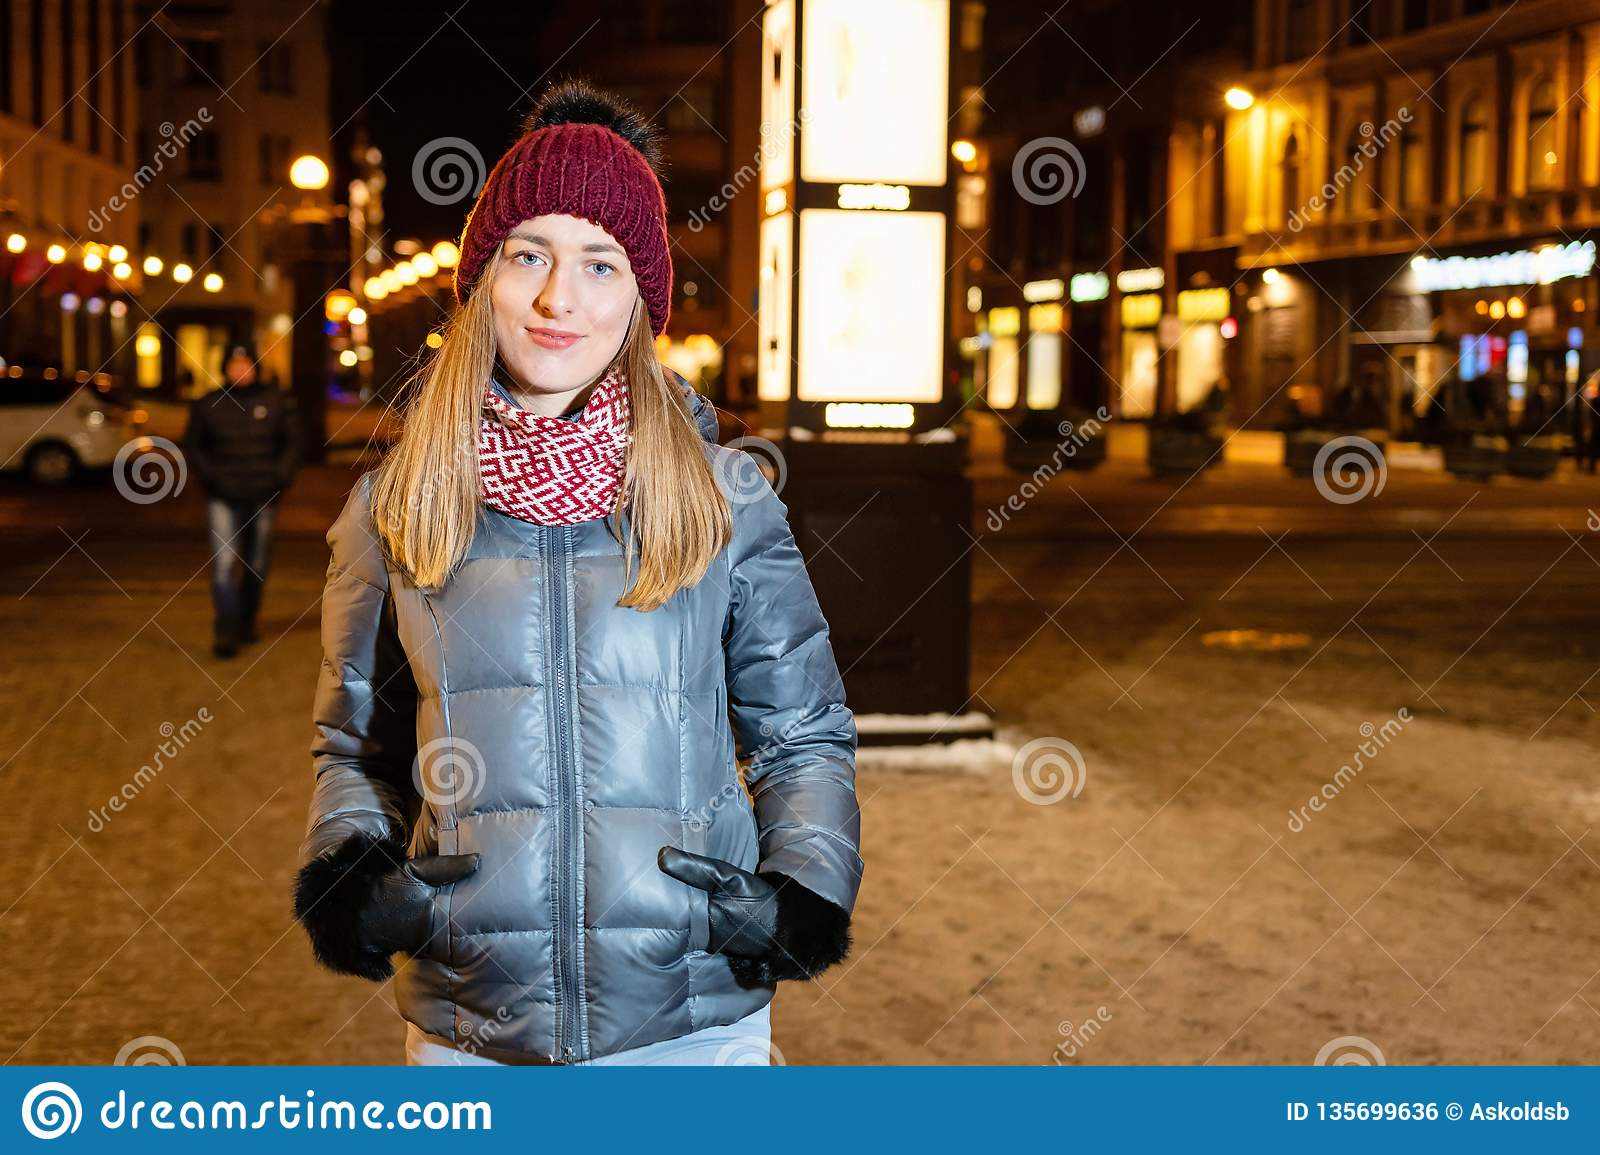 Winter portrait of happy young woman walking in snowy city decorated for Christmas and New Year holidays.